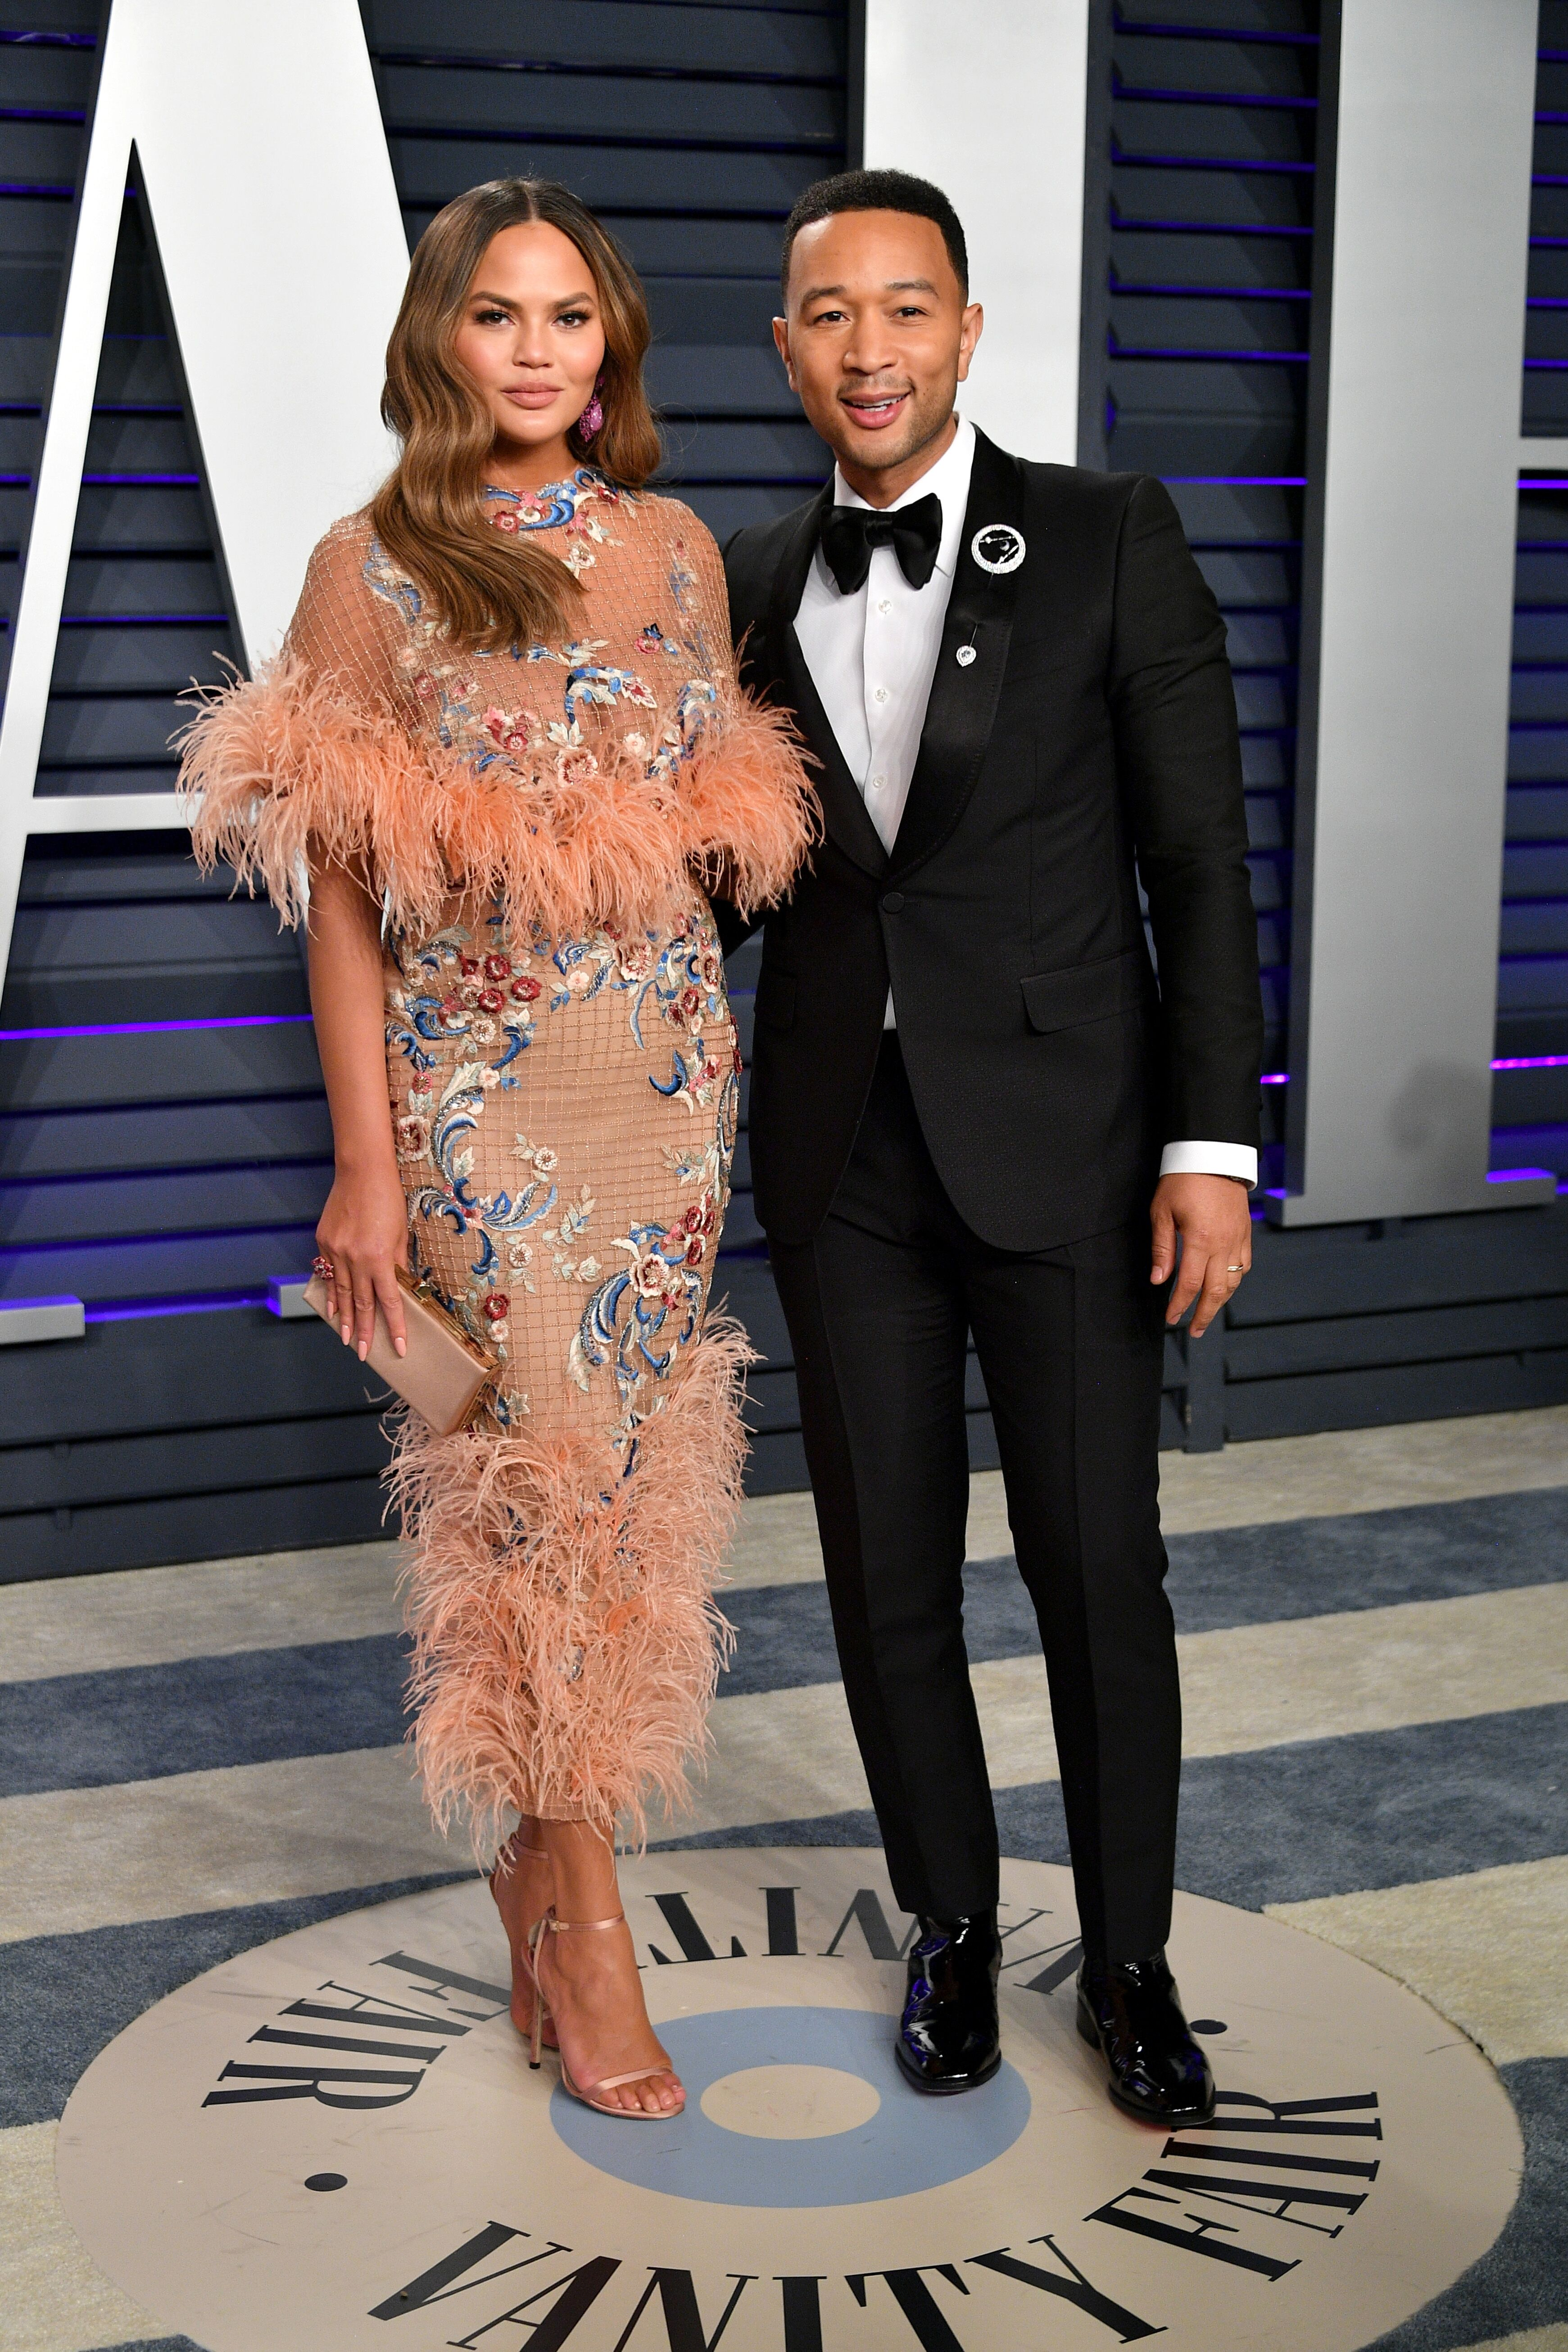 Chrissy Teigen and John Legend attend the 2019 Vanity Fair Oscar Party. | Source: Getty Images